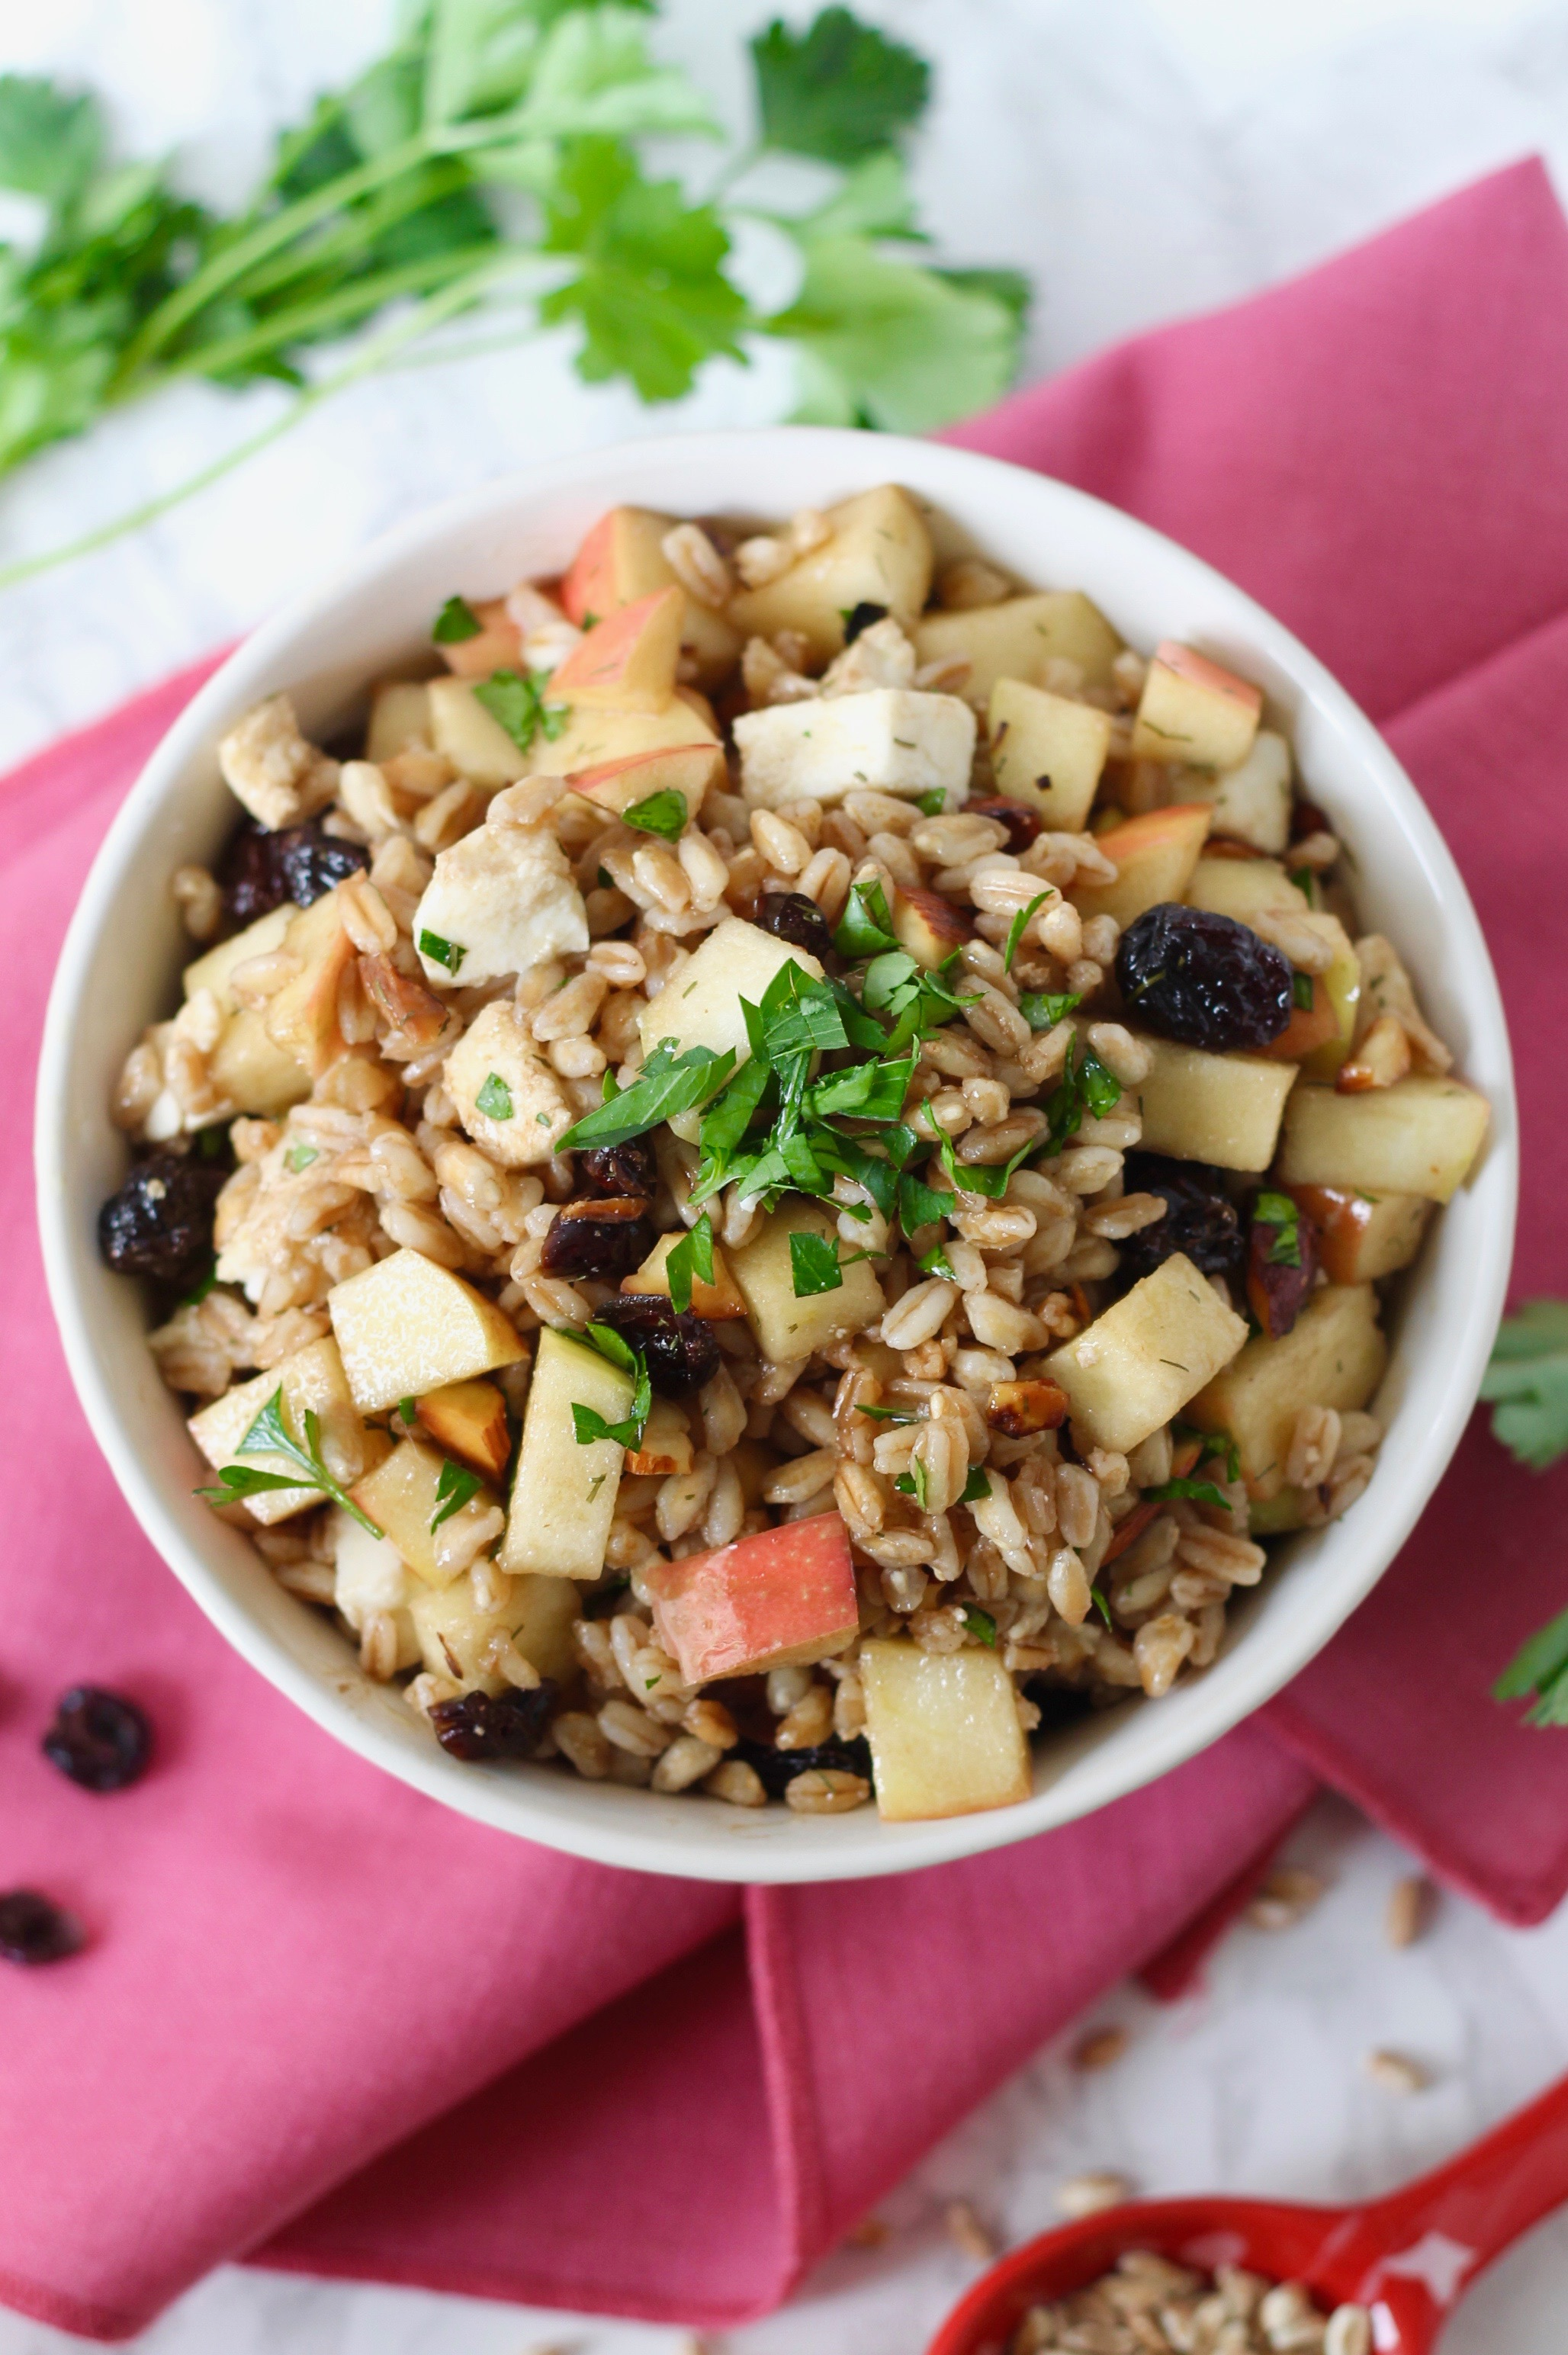 Farro Salad with Apples, Almonds and Mozzarella